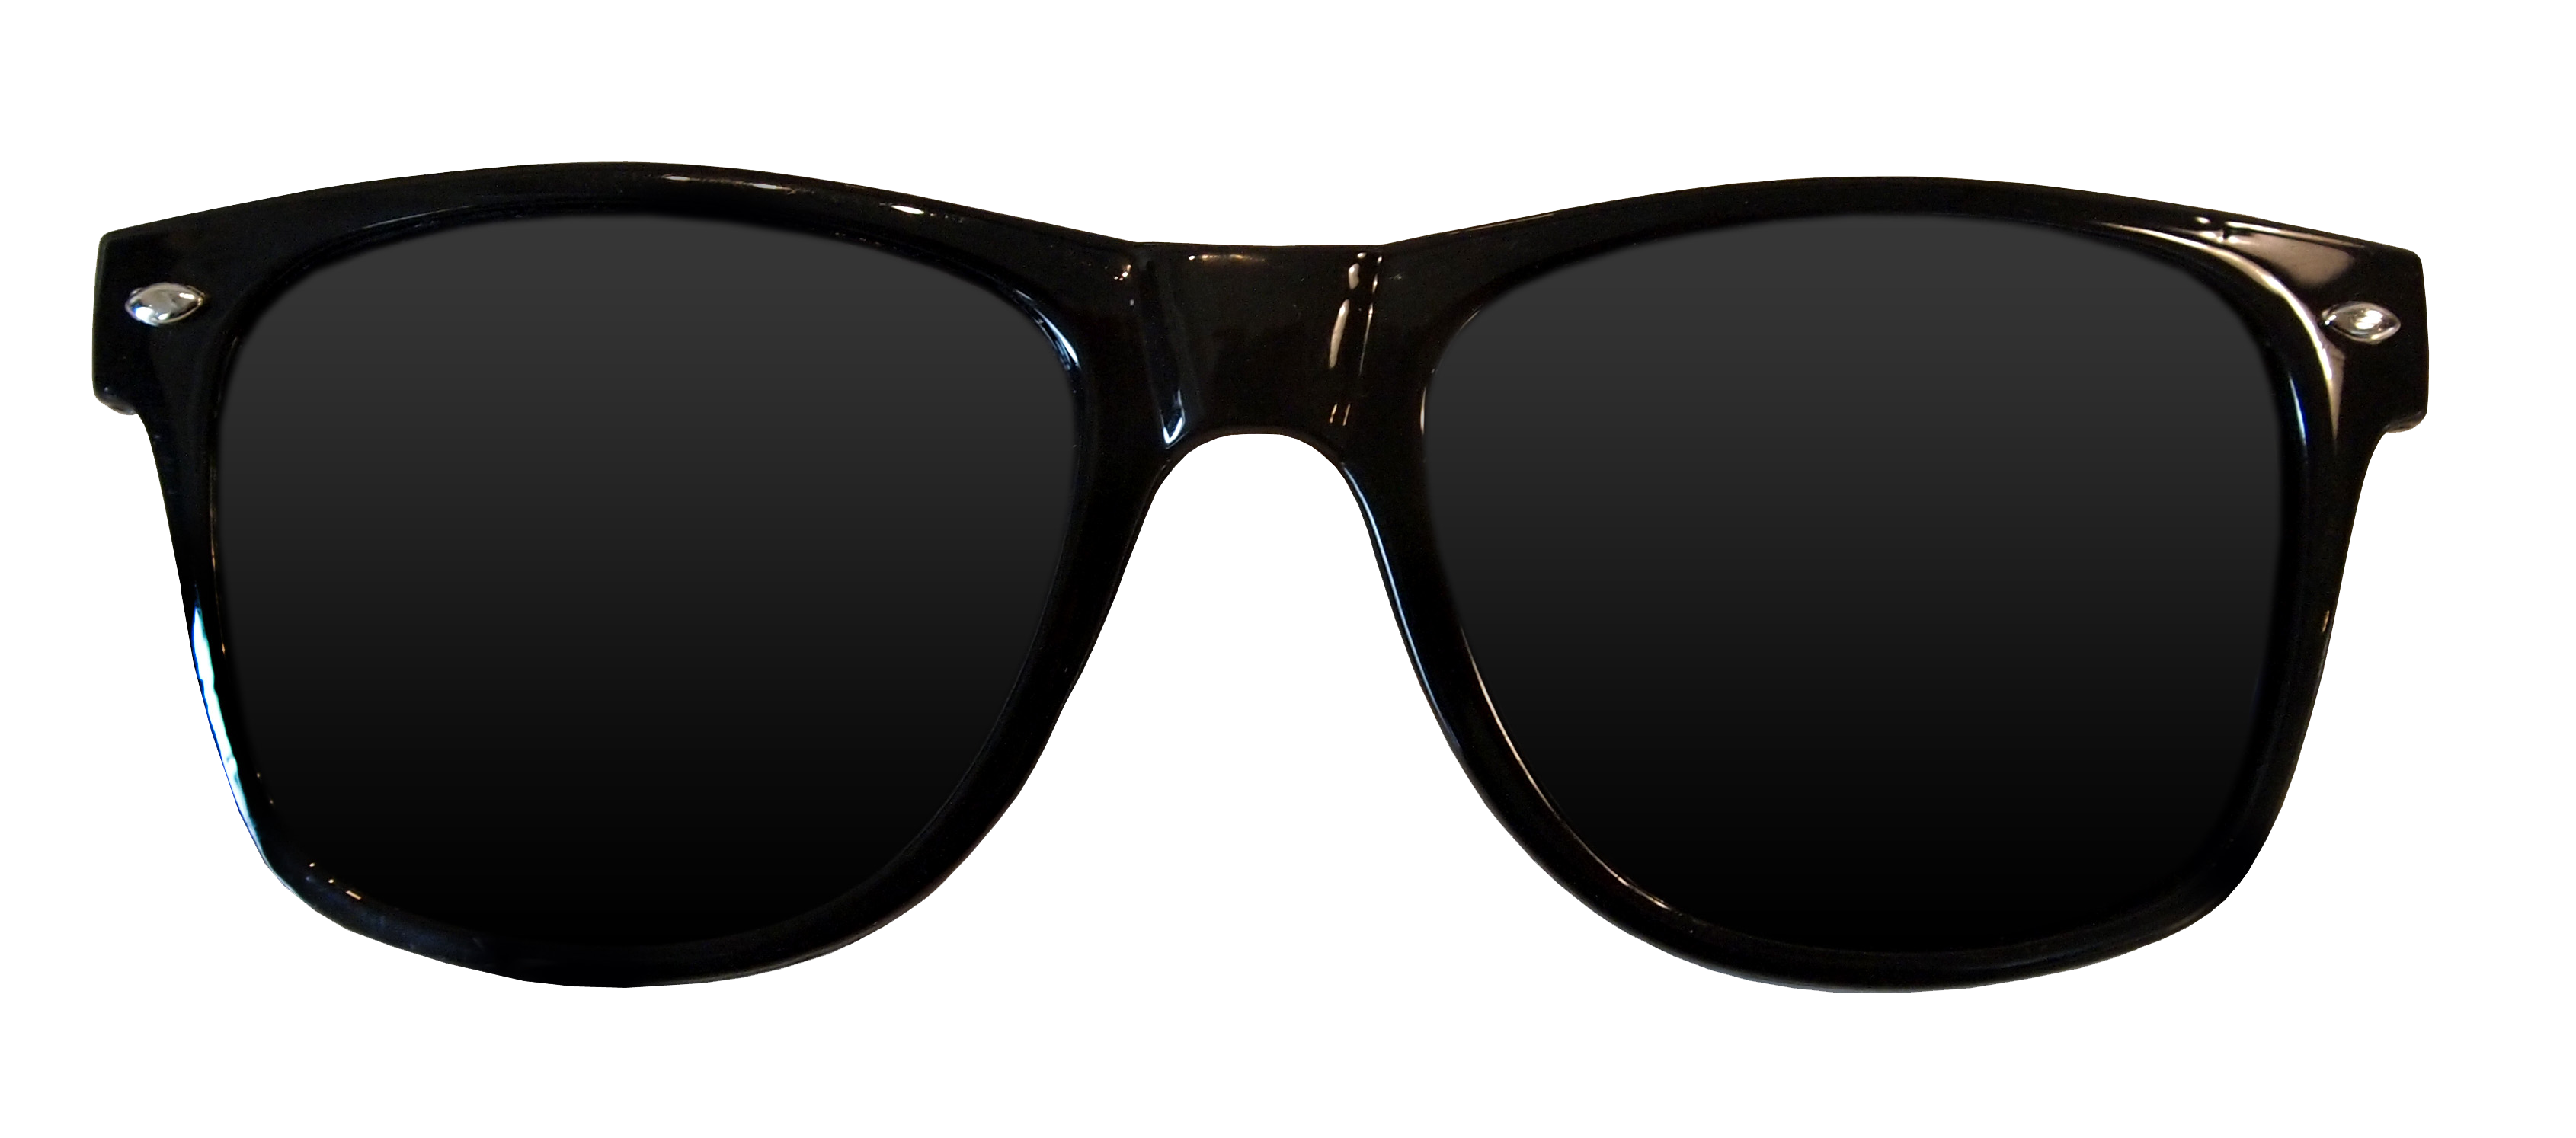 Black sunglasses png. Hq transparent images pluspng